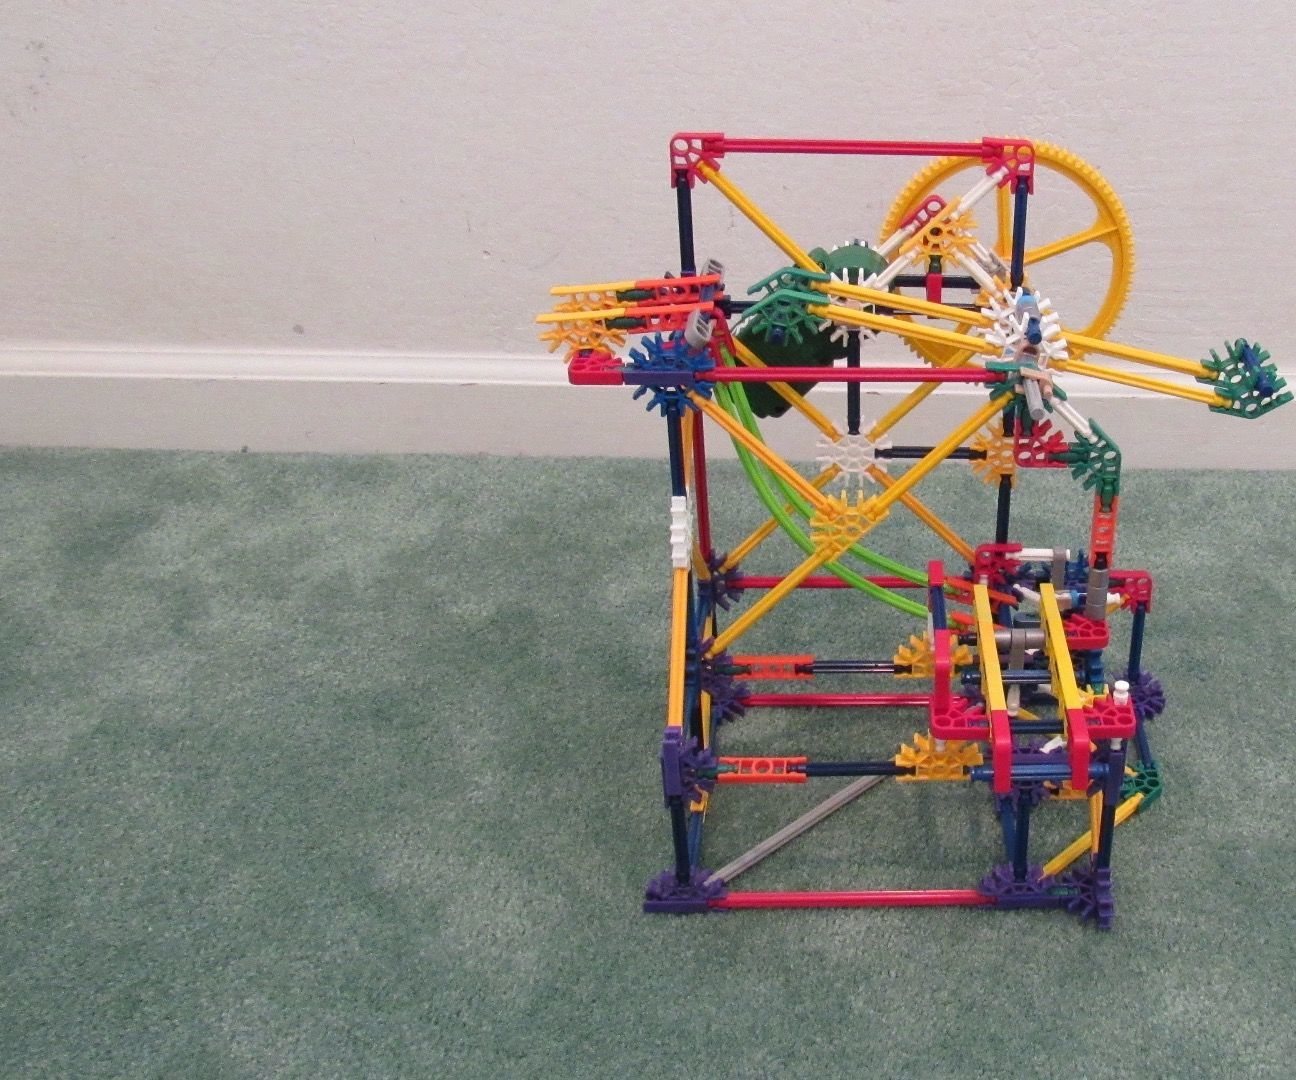 Spinning Push Lift: A K'nex Ball Machine Lift